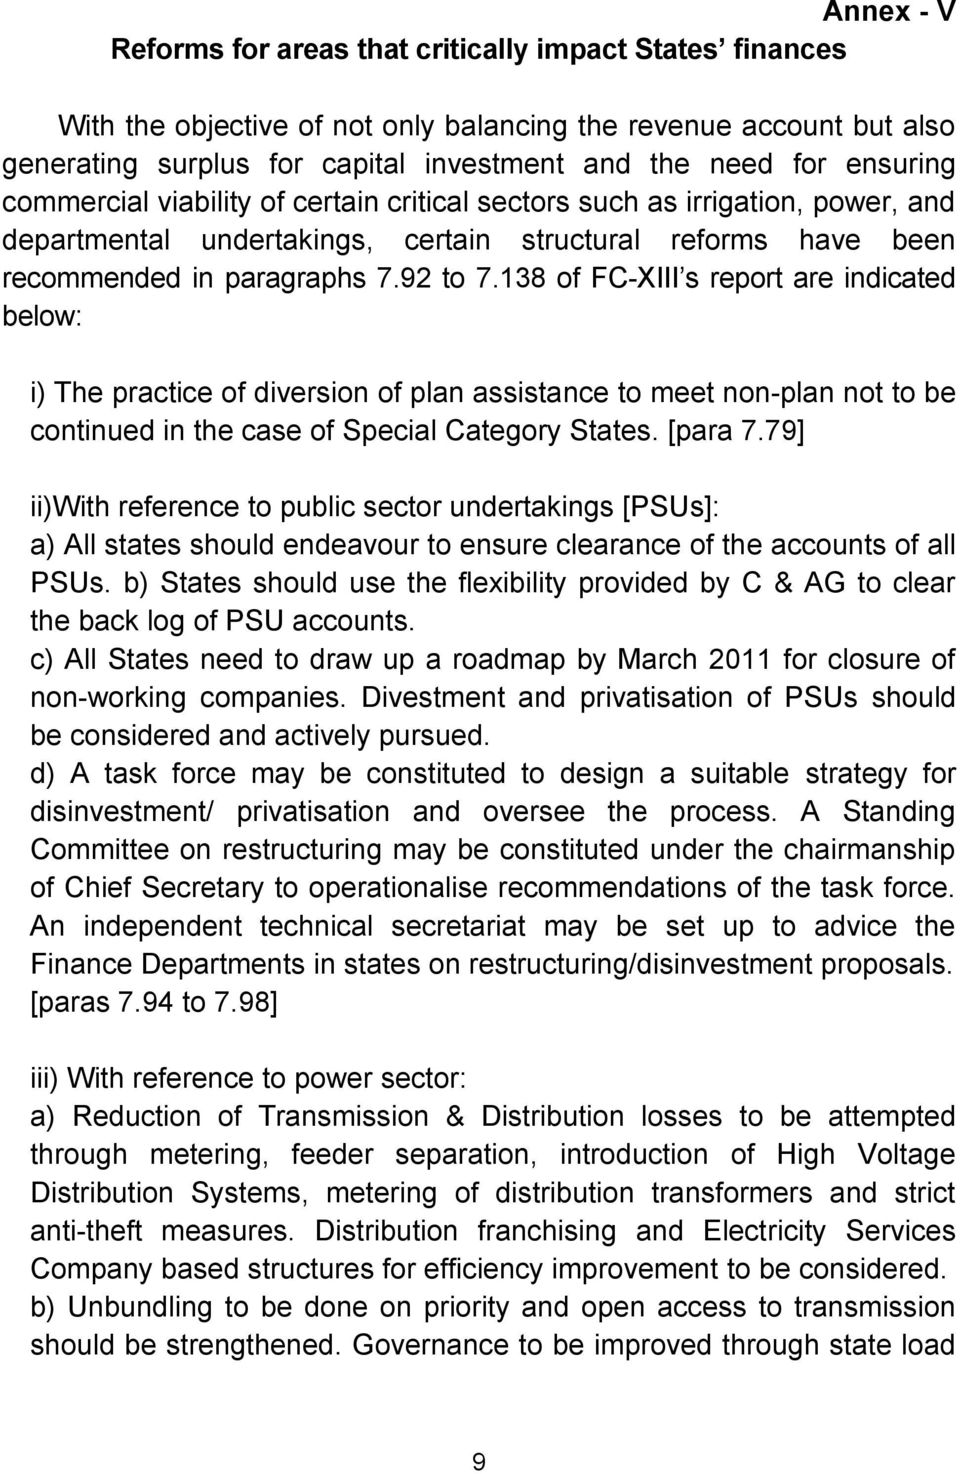 138 of FC-XIII s report are indicated below: i) The practice of diversion of plan assistance to meet non-plan not to be continued in the case of Special Category States. [para 7.